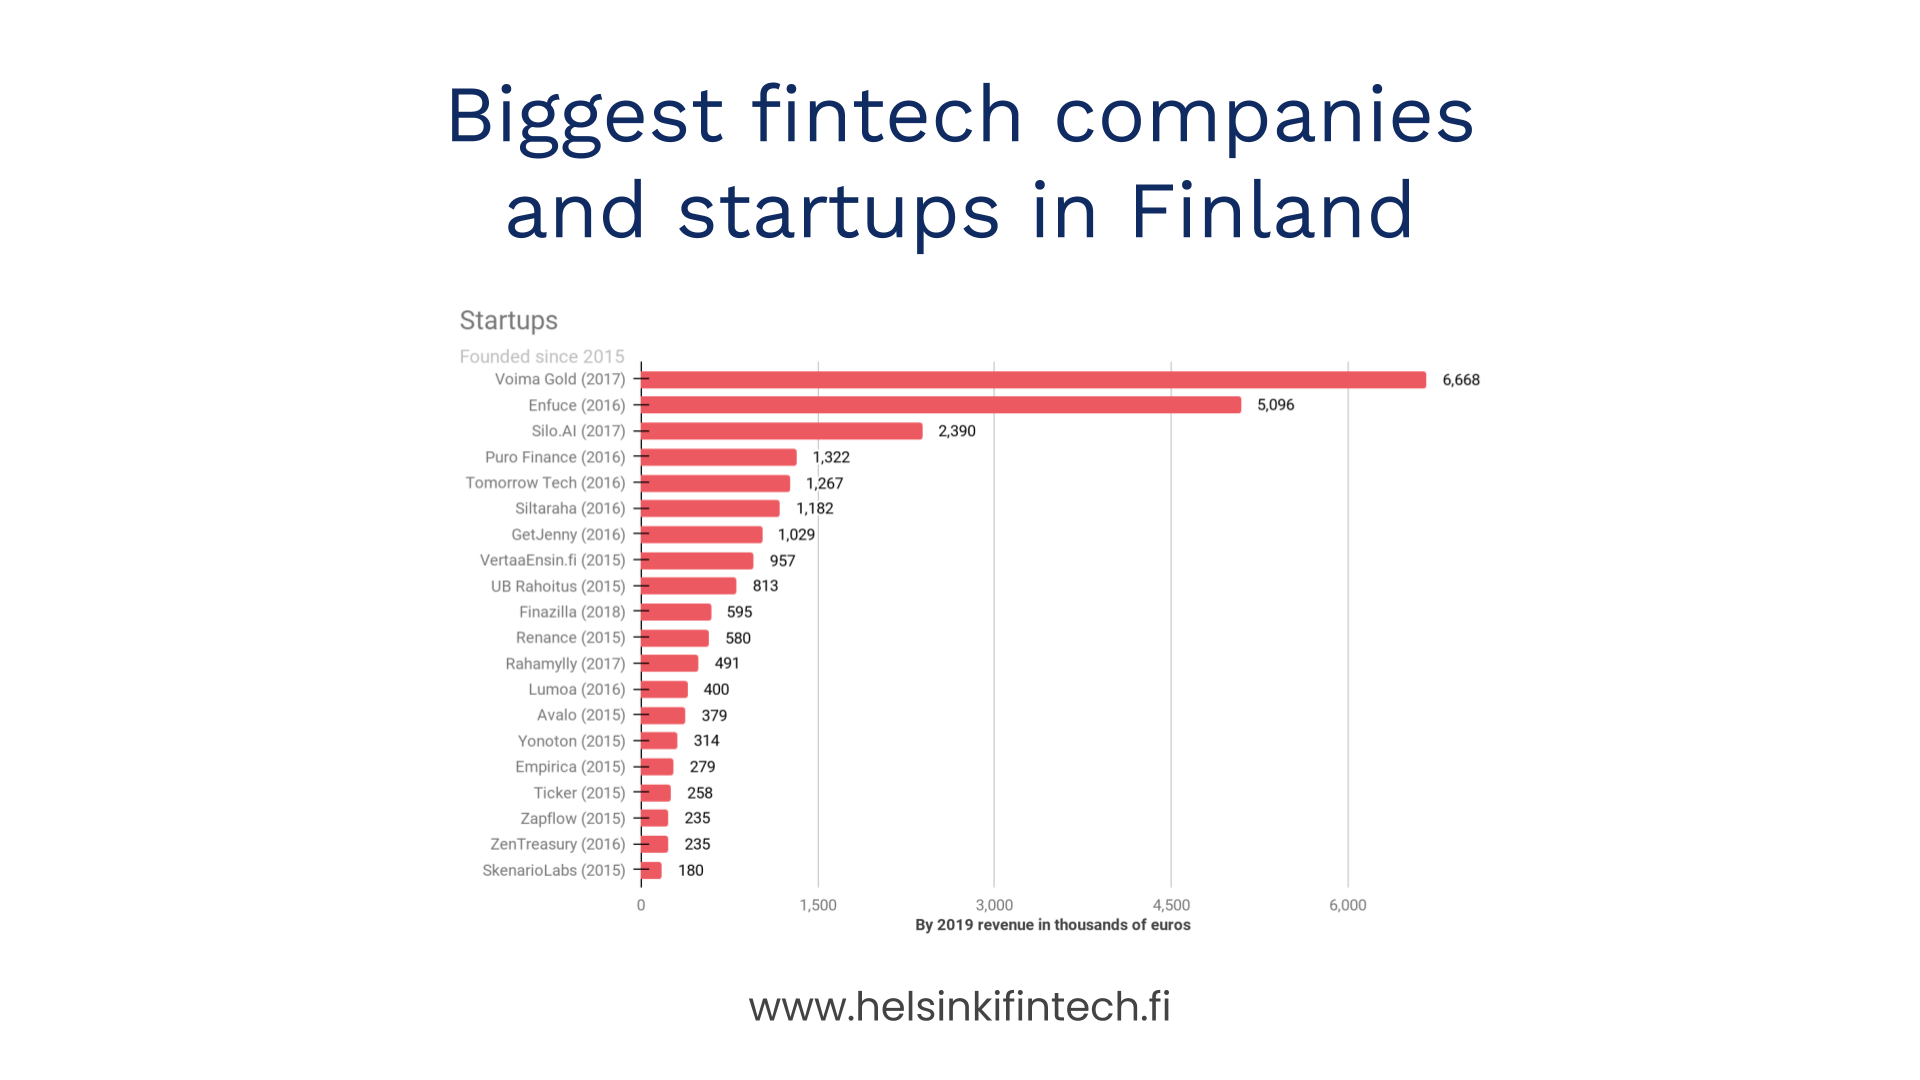 ZenTreasury listed among the biggest fintech companies and startups in Finland